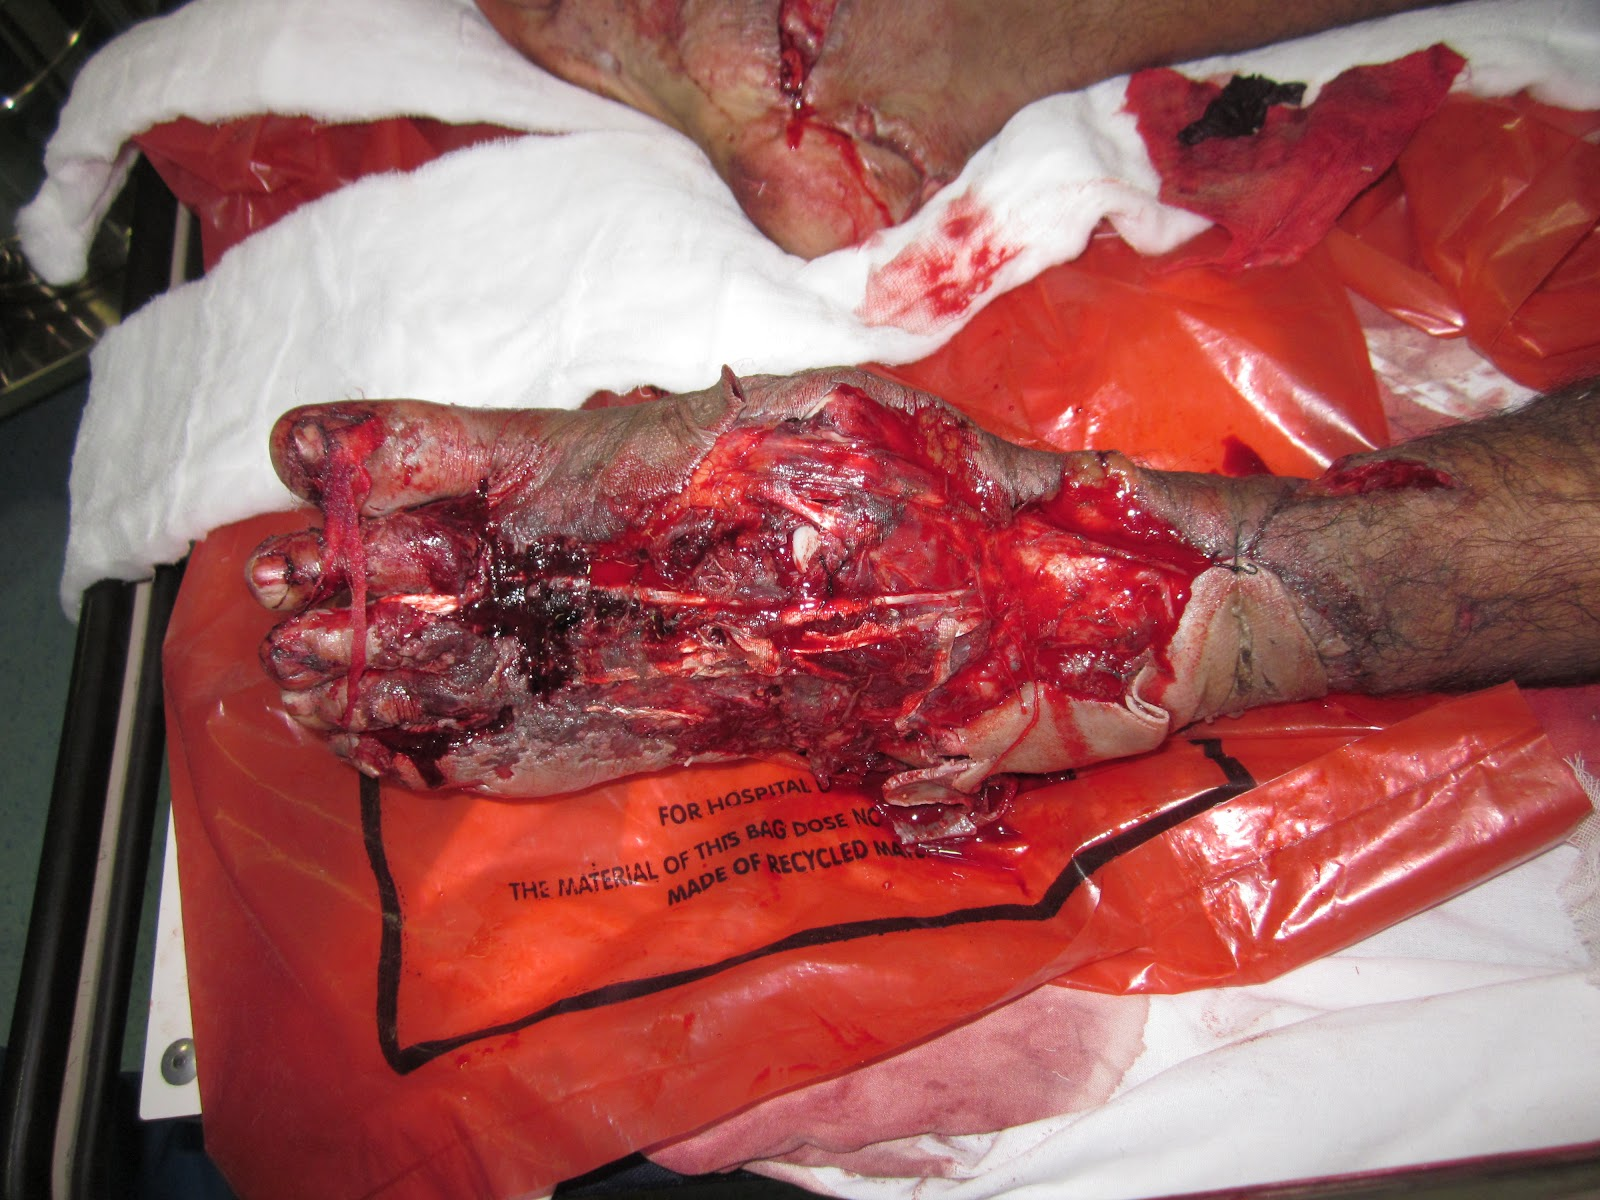 MAJOR CRUSH INJURY FOOT WITH HEEL PAD AVULSION/ INJURY, LISFRANC -3.bp.blogspot.com